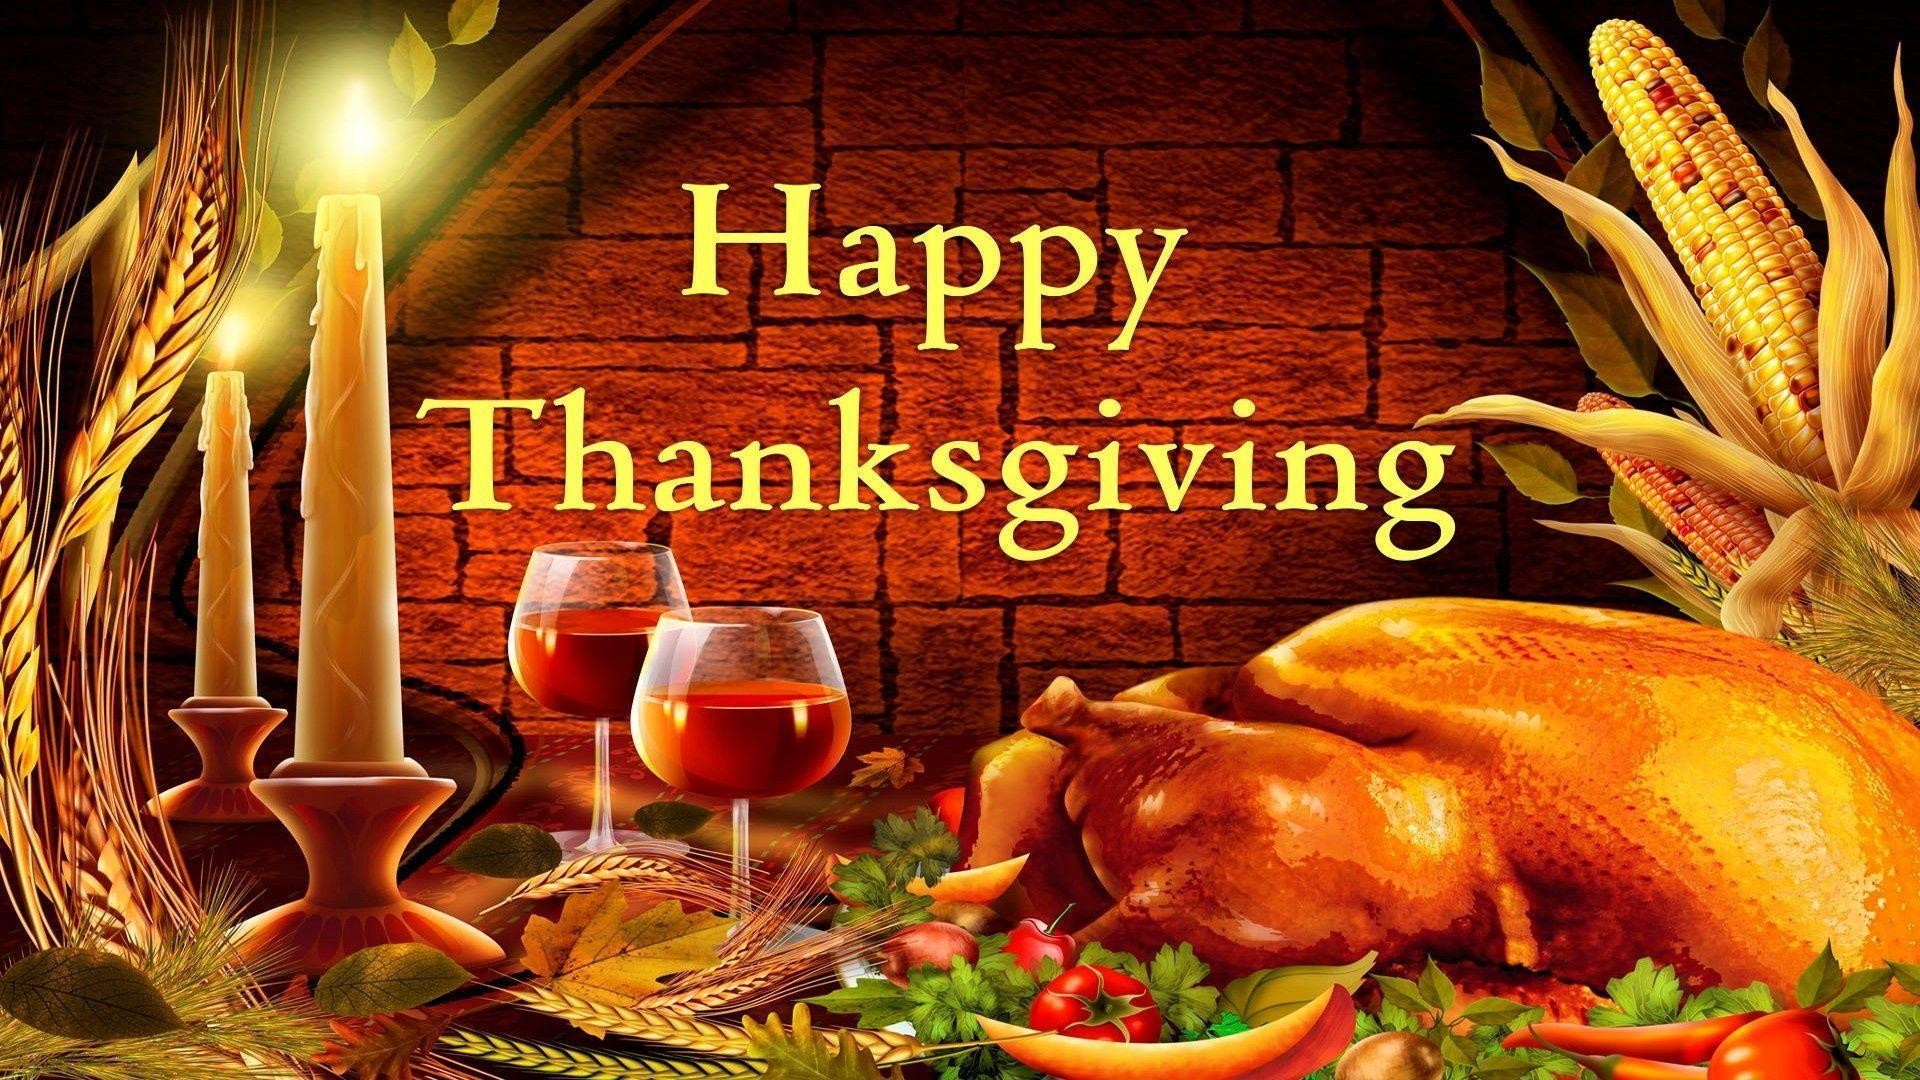 50 Happy Thanksgiving Images 2019 Thanksgiving Pictures